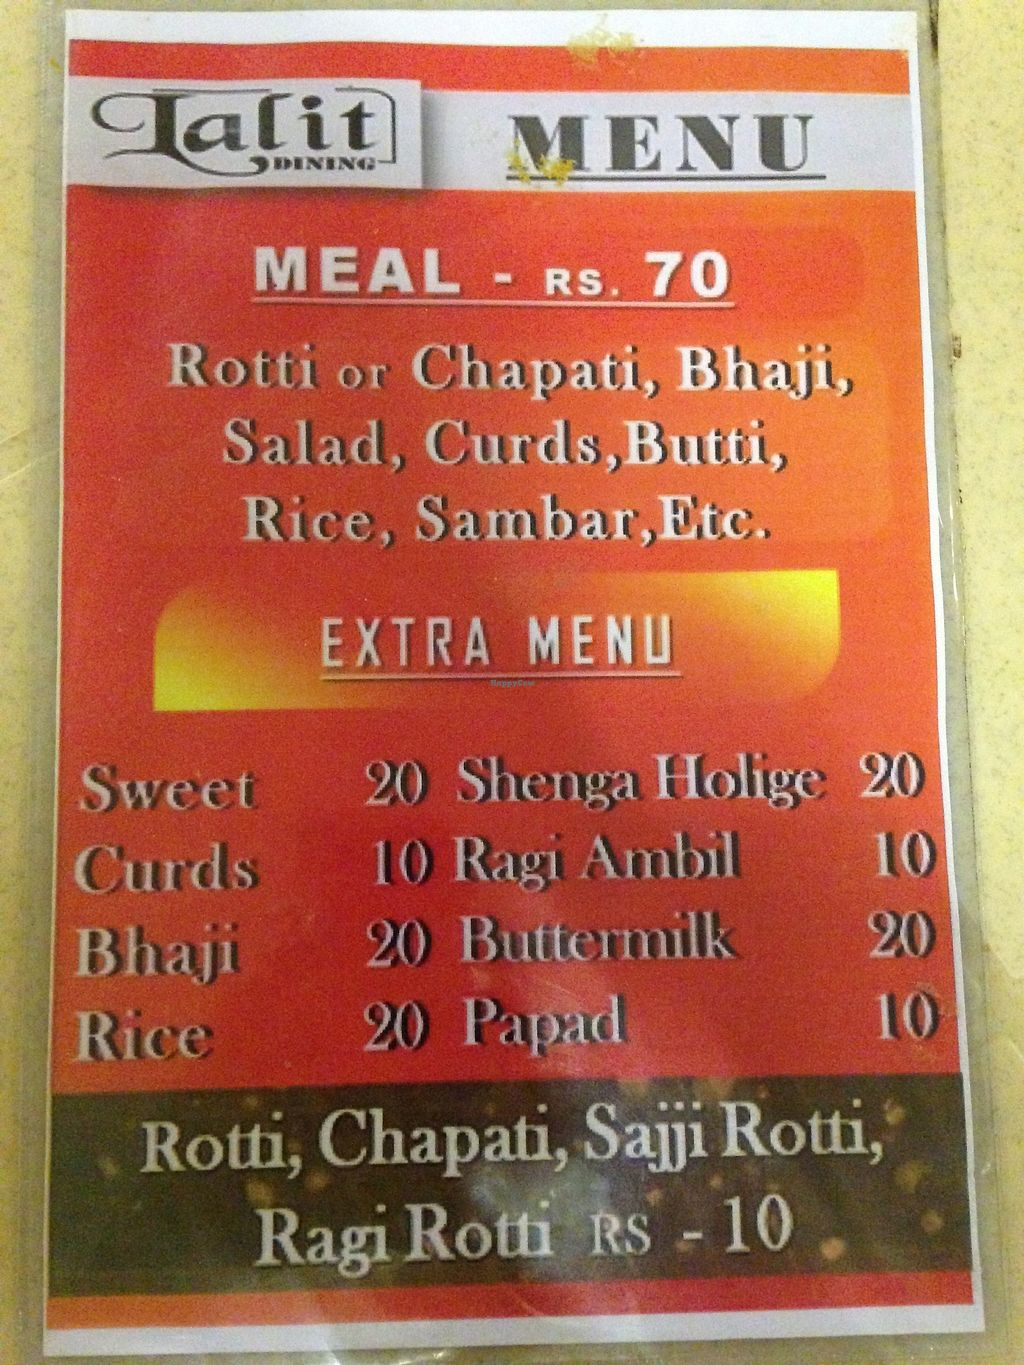 """Photo of Lalit Dining  by <a href=""""/members/profile/LobkeBrasseur"""">LobkeBrasseur</a> <br/>Menu <br/> March 20, 2018  - <a href='/contact/abuse/image/115006/373192'>Report</a>"""